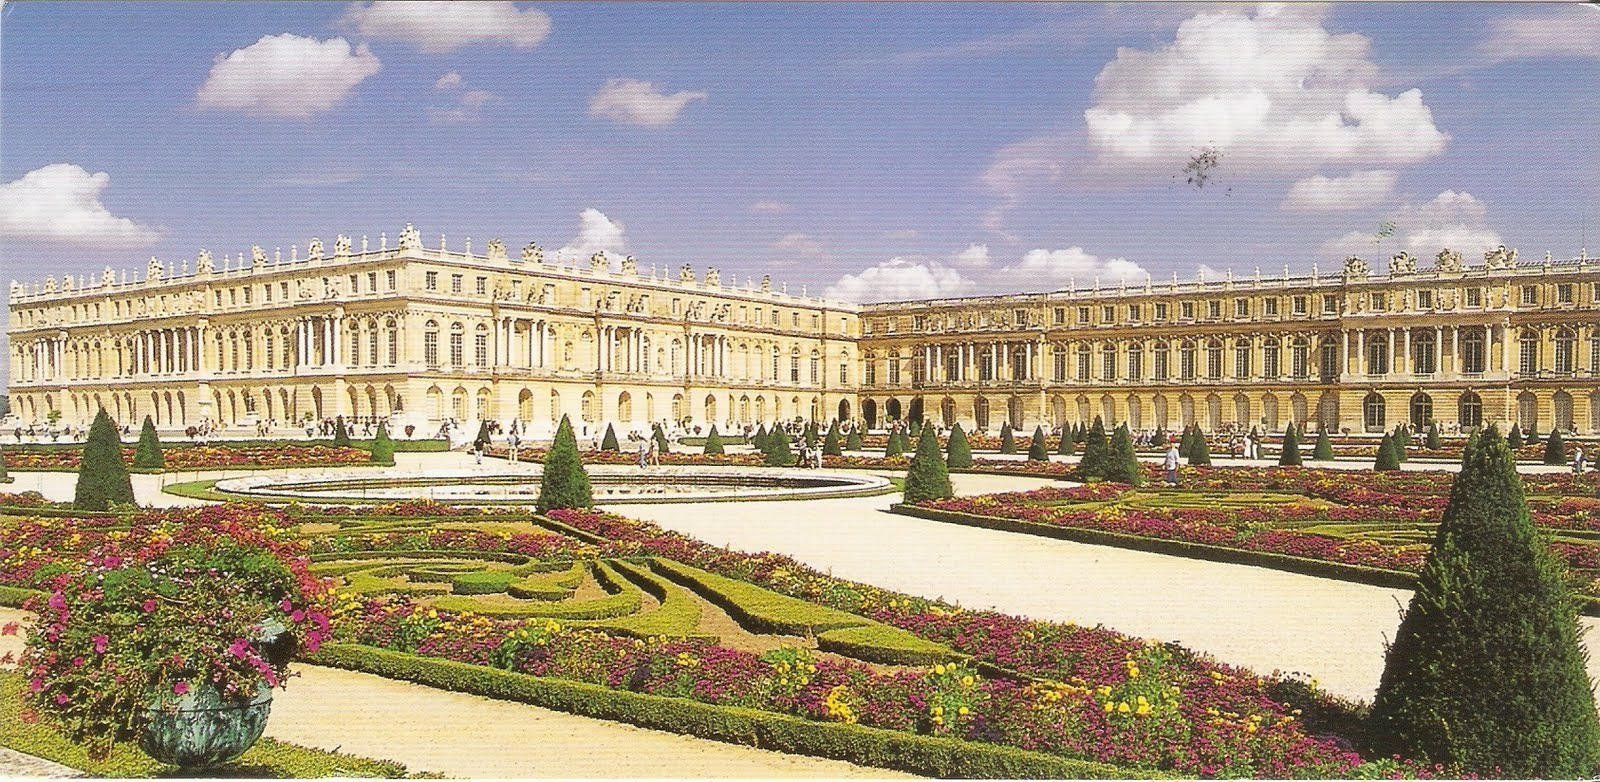 Palace of Versailles 6 HD Wallpaper Landmarks Wallpapers 1600x782